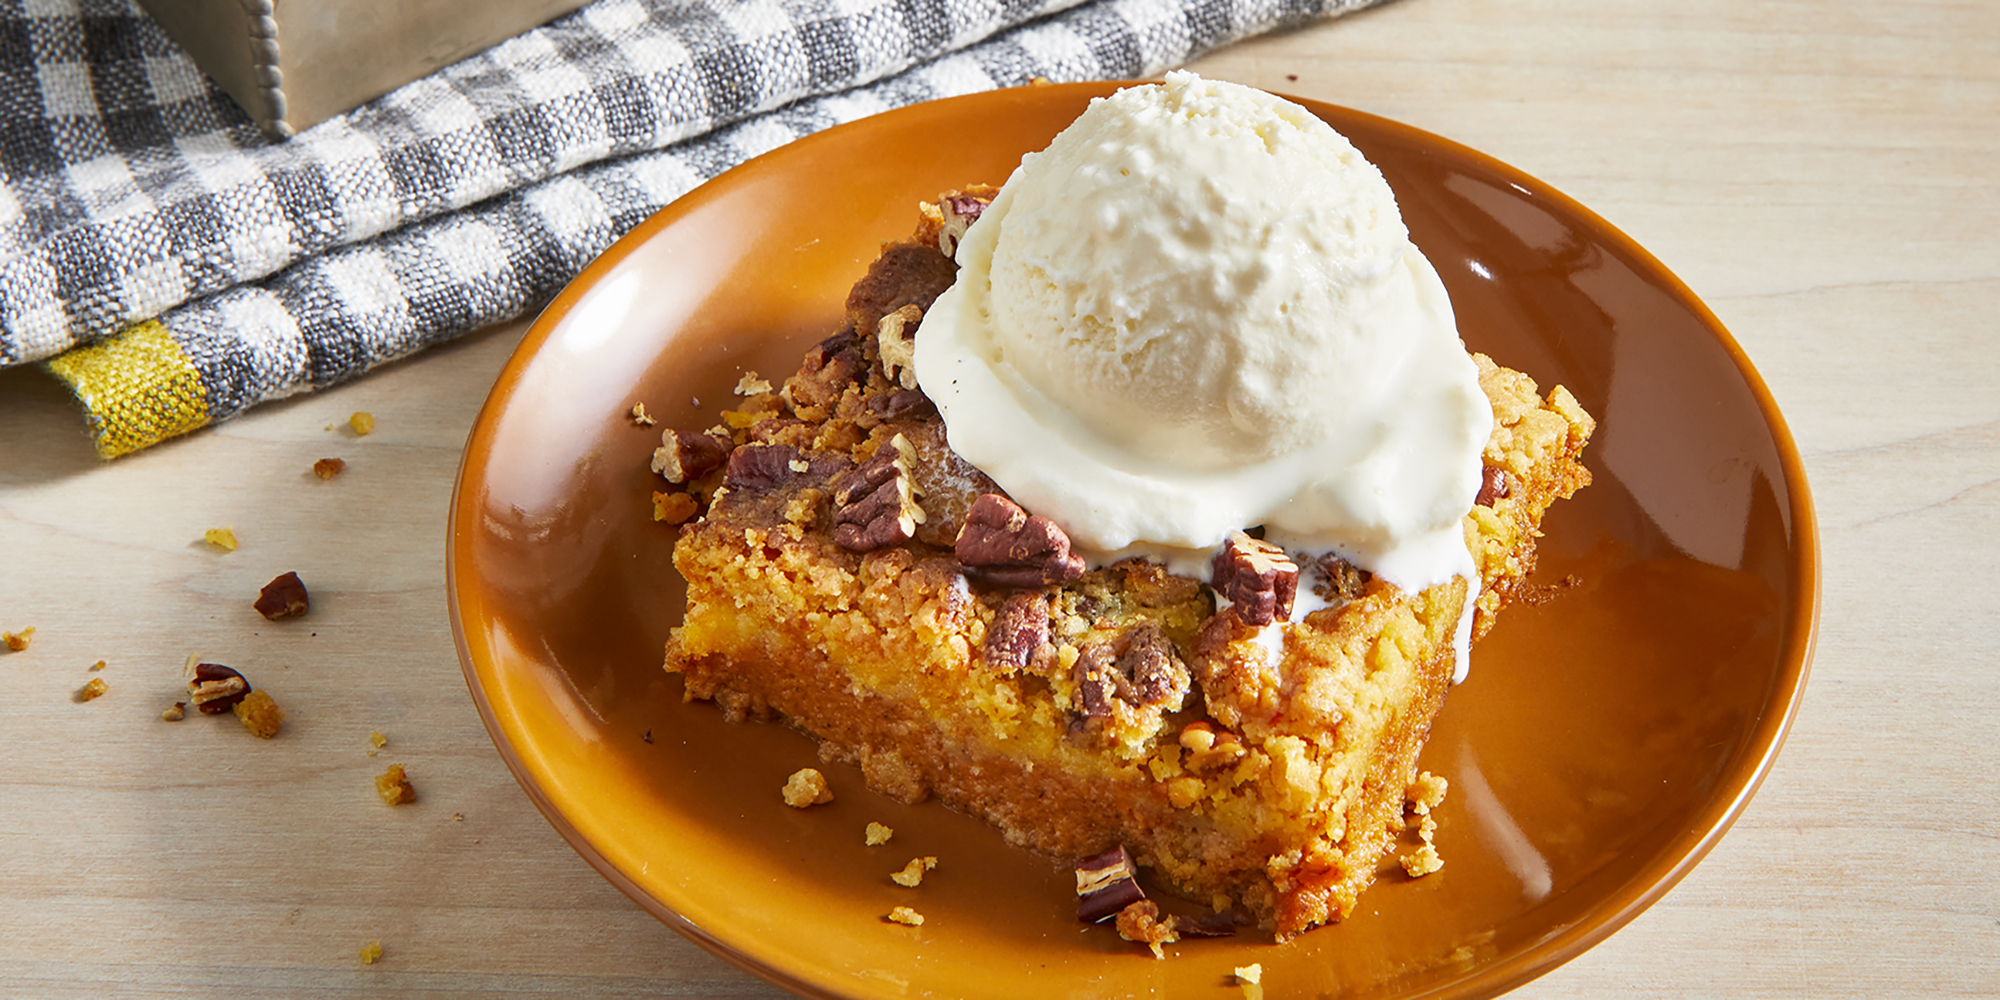 A single square slice of pumpkin crunch cake is plated on a small burnt orange plate and topped with a melting scoop of vanilla ice cream.The remaining cake sits in the baking dish in the background.